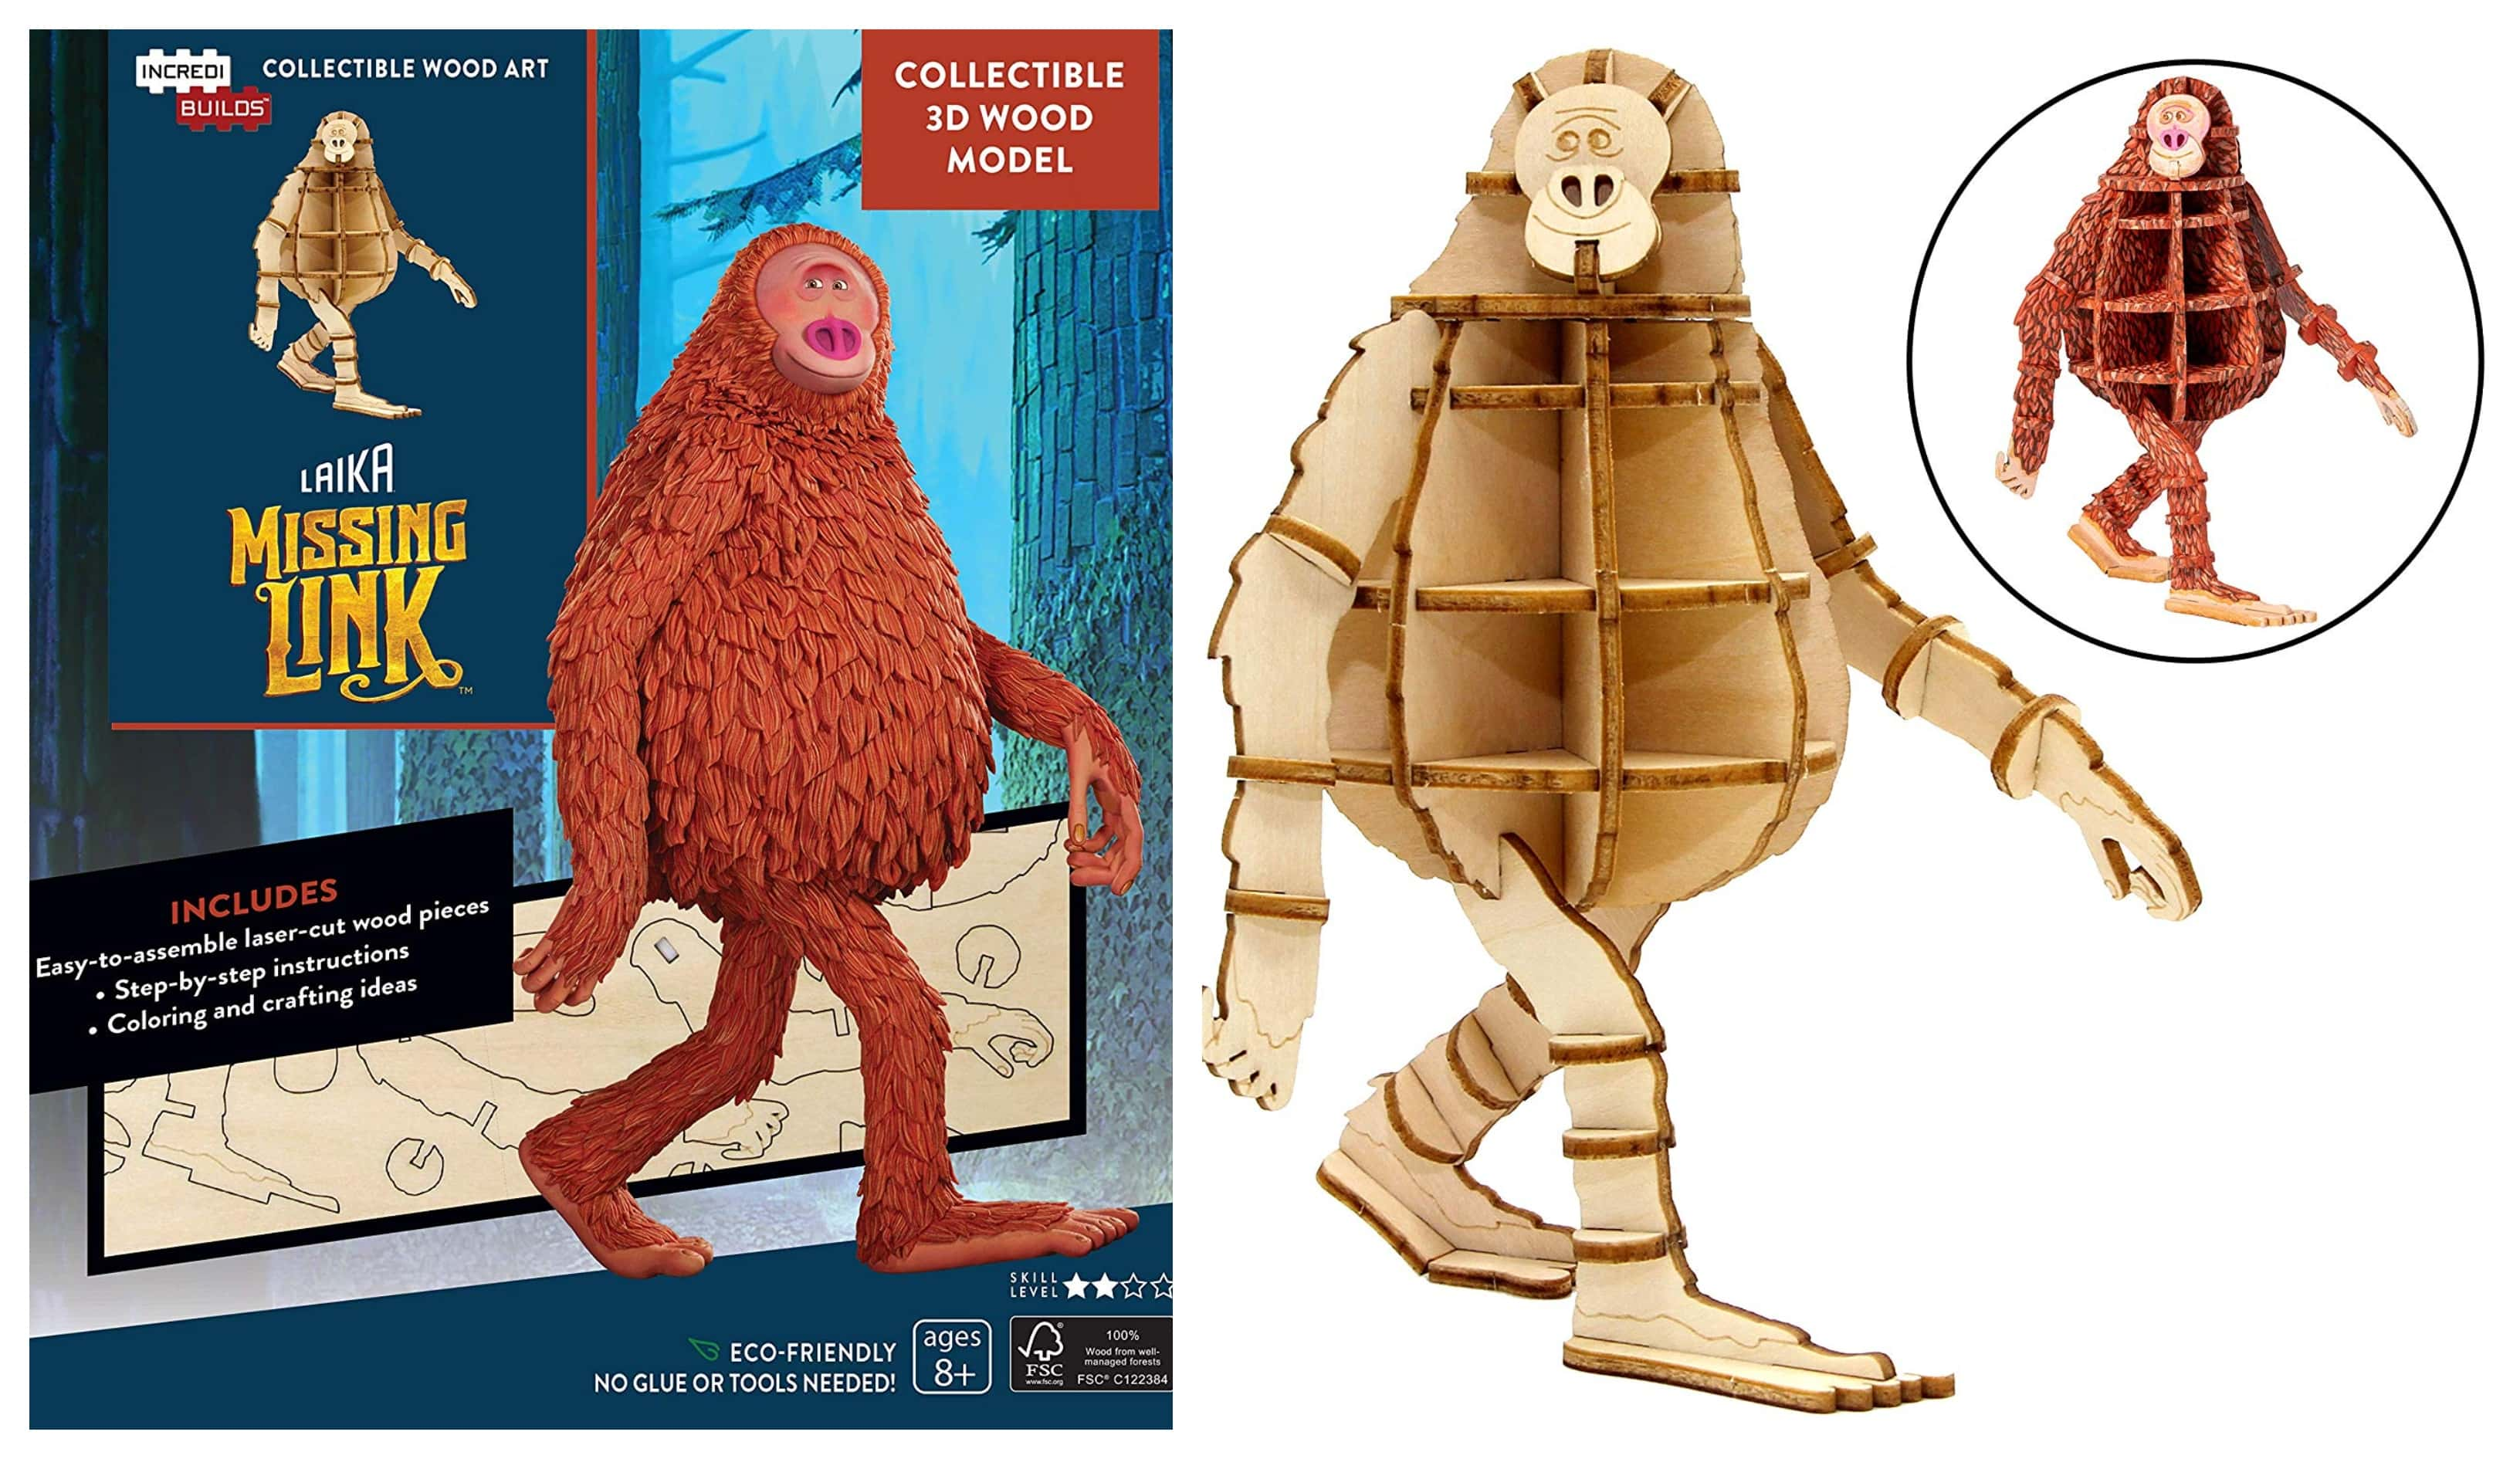 The Review Wire: IncrediBuilds: Laika Missing Link 3D Wood Model